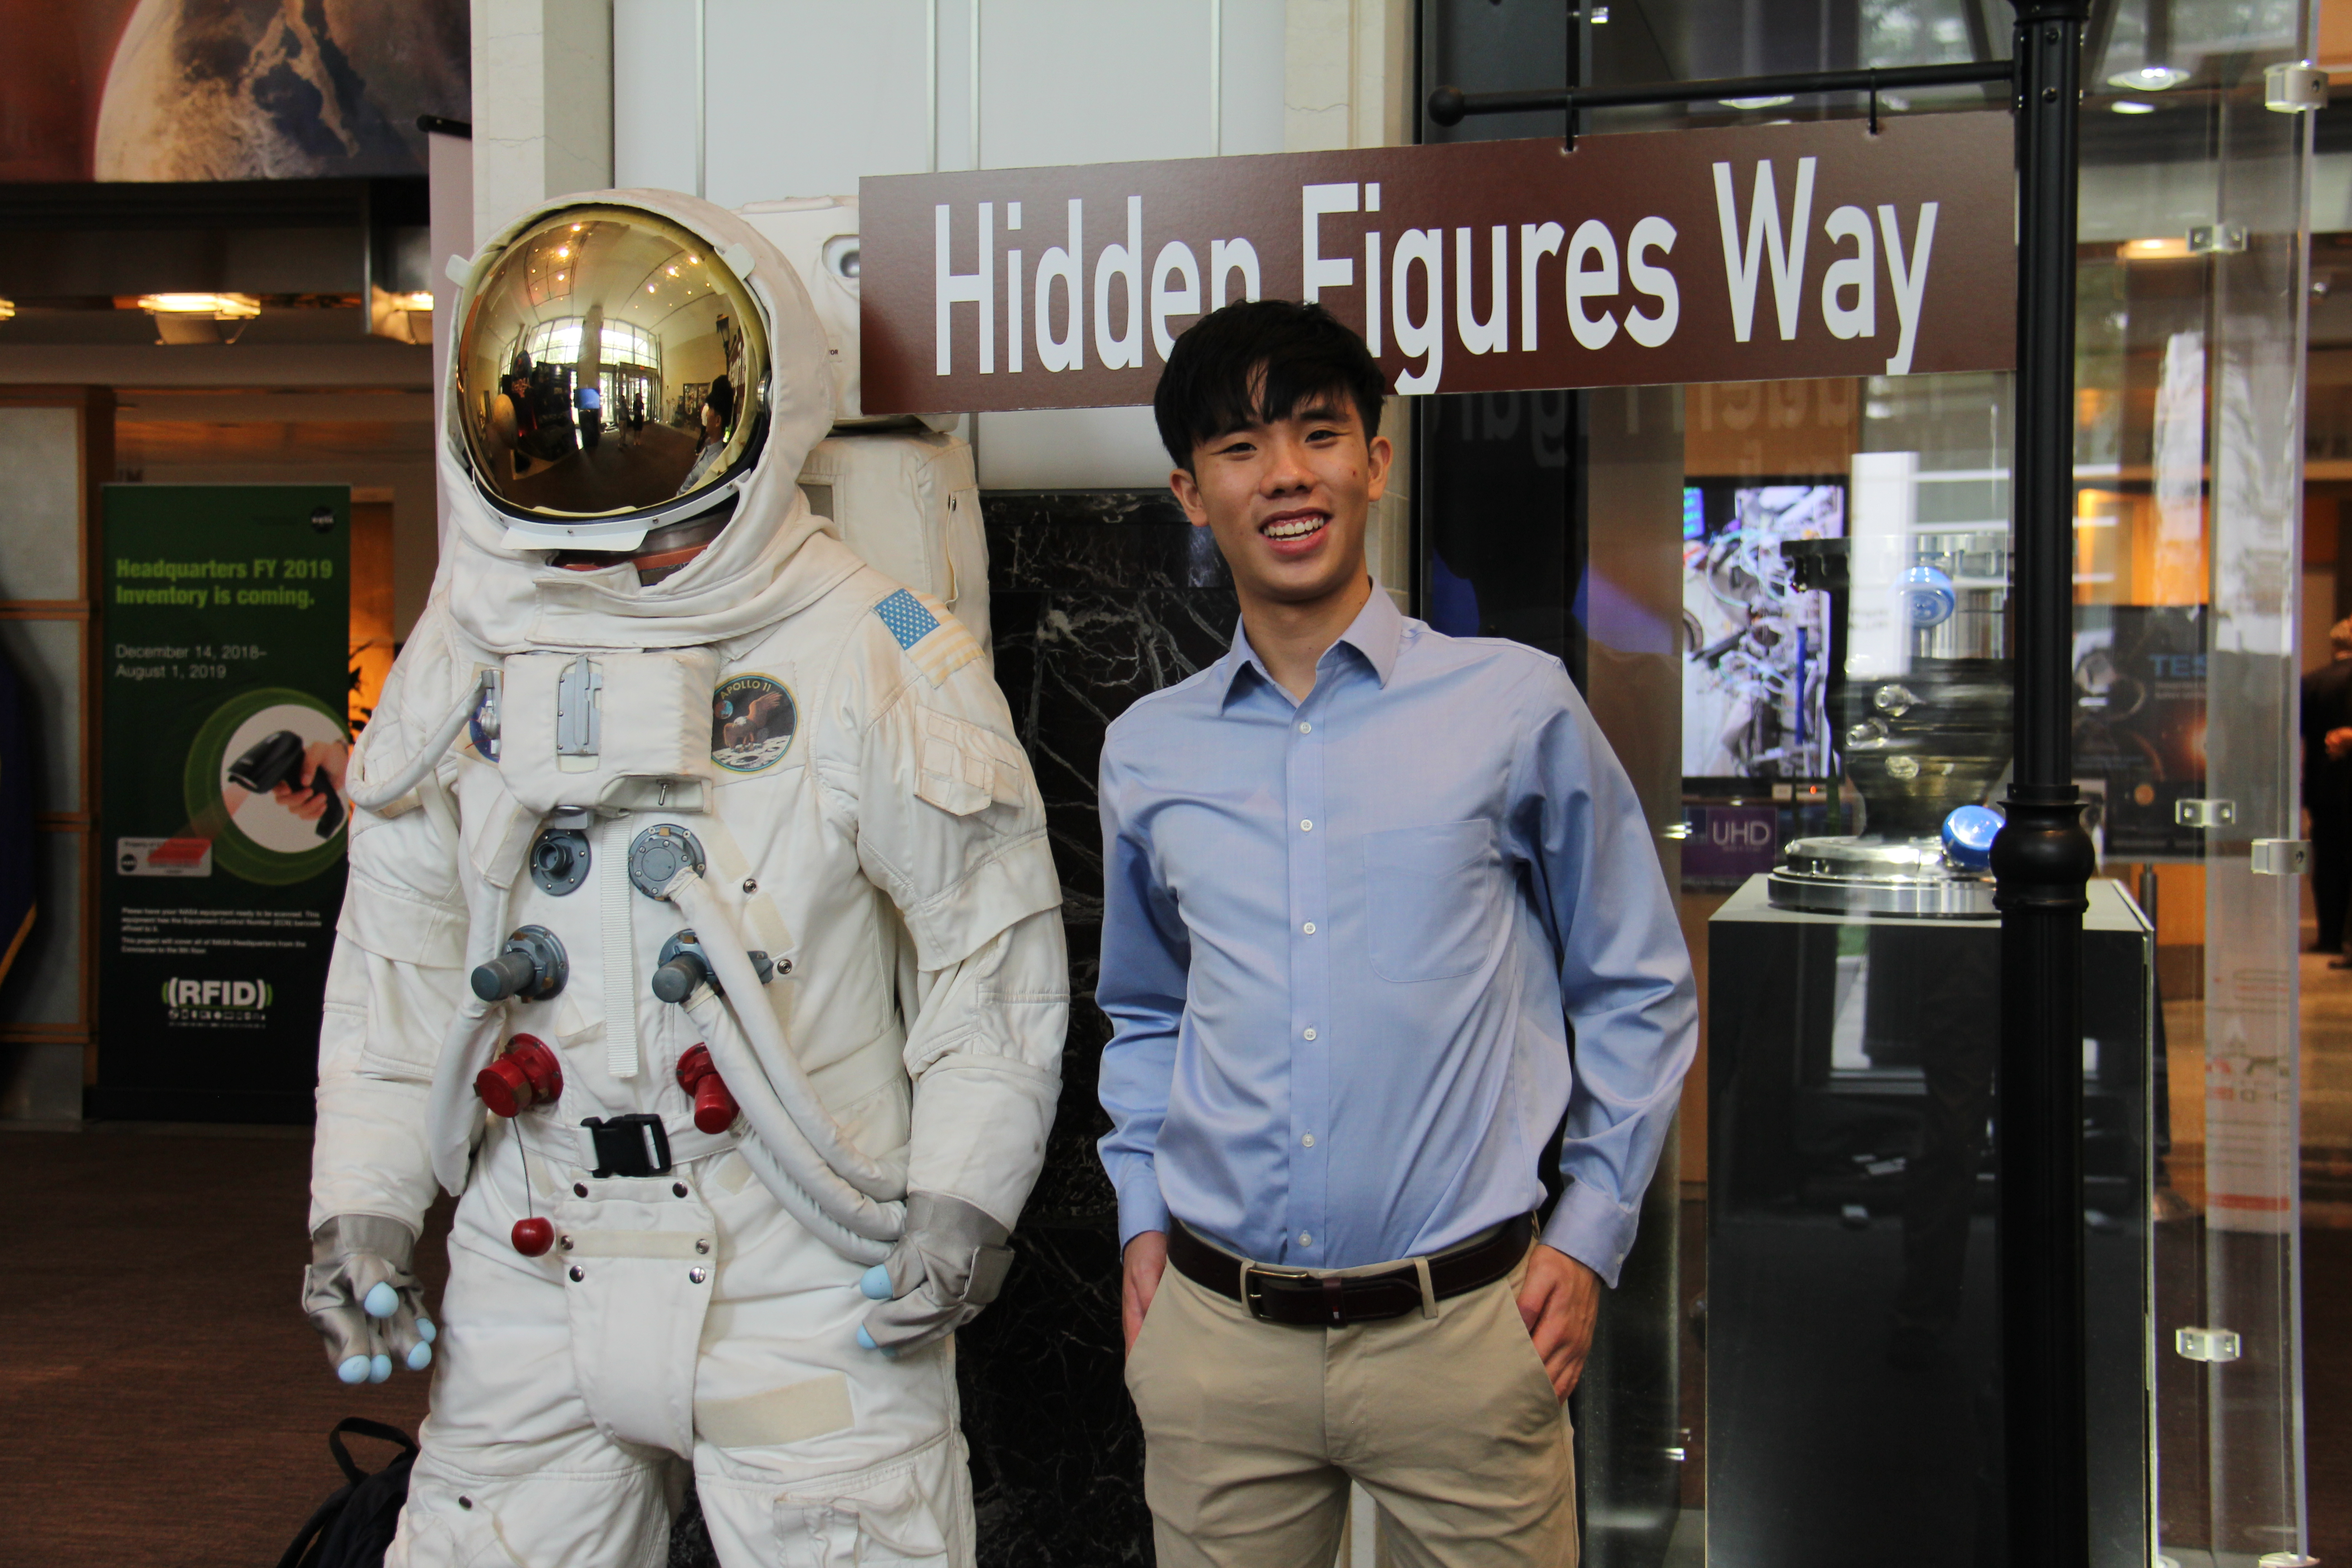 Brian Wu at NASA